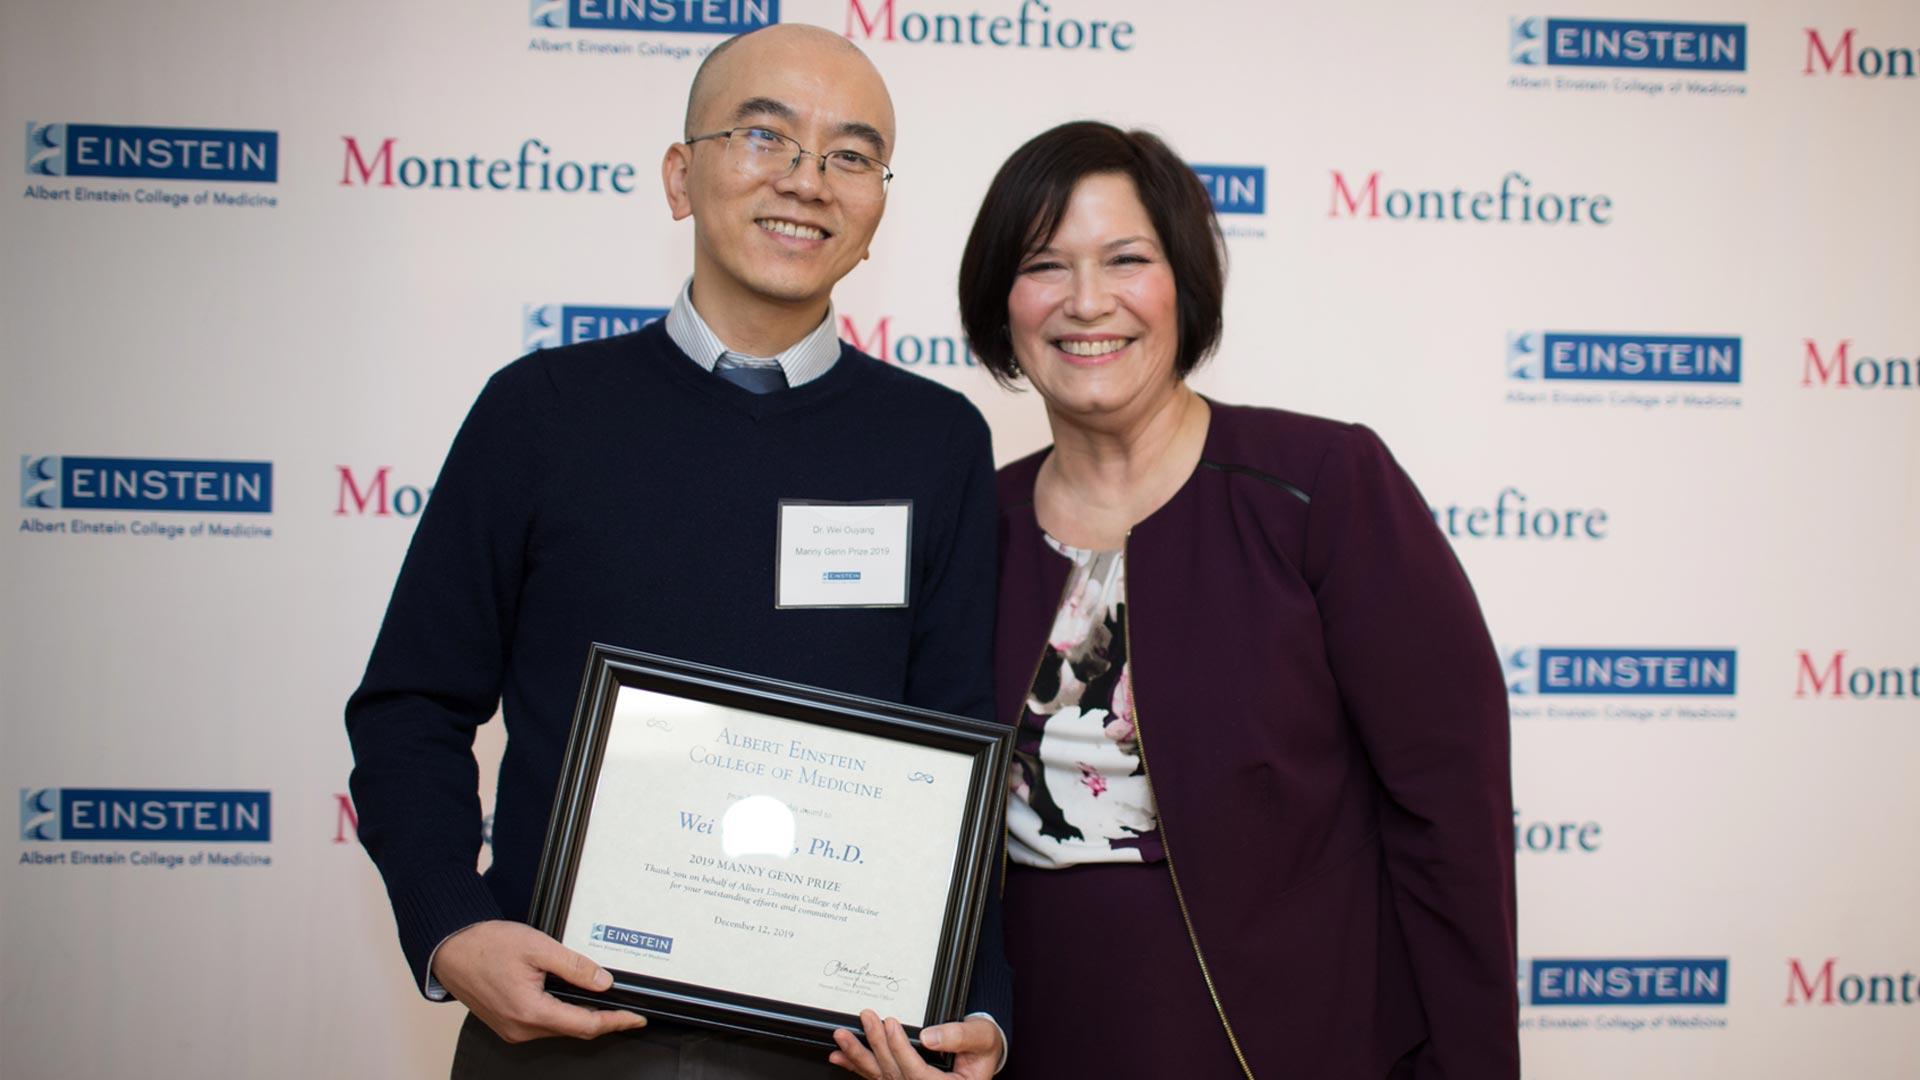 Dr. Wei Ouyang: From Research Fellow to Manny Genn Prize Winner